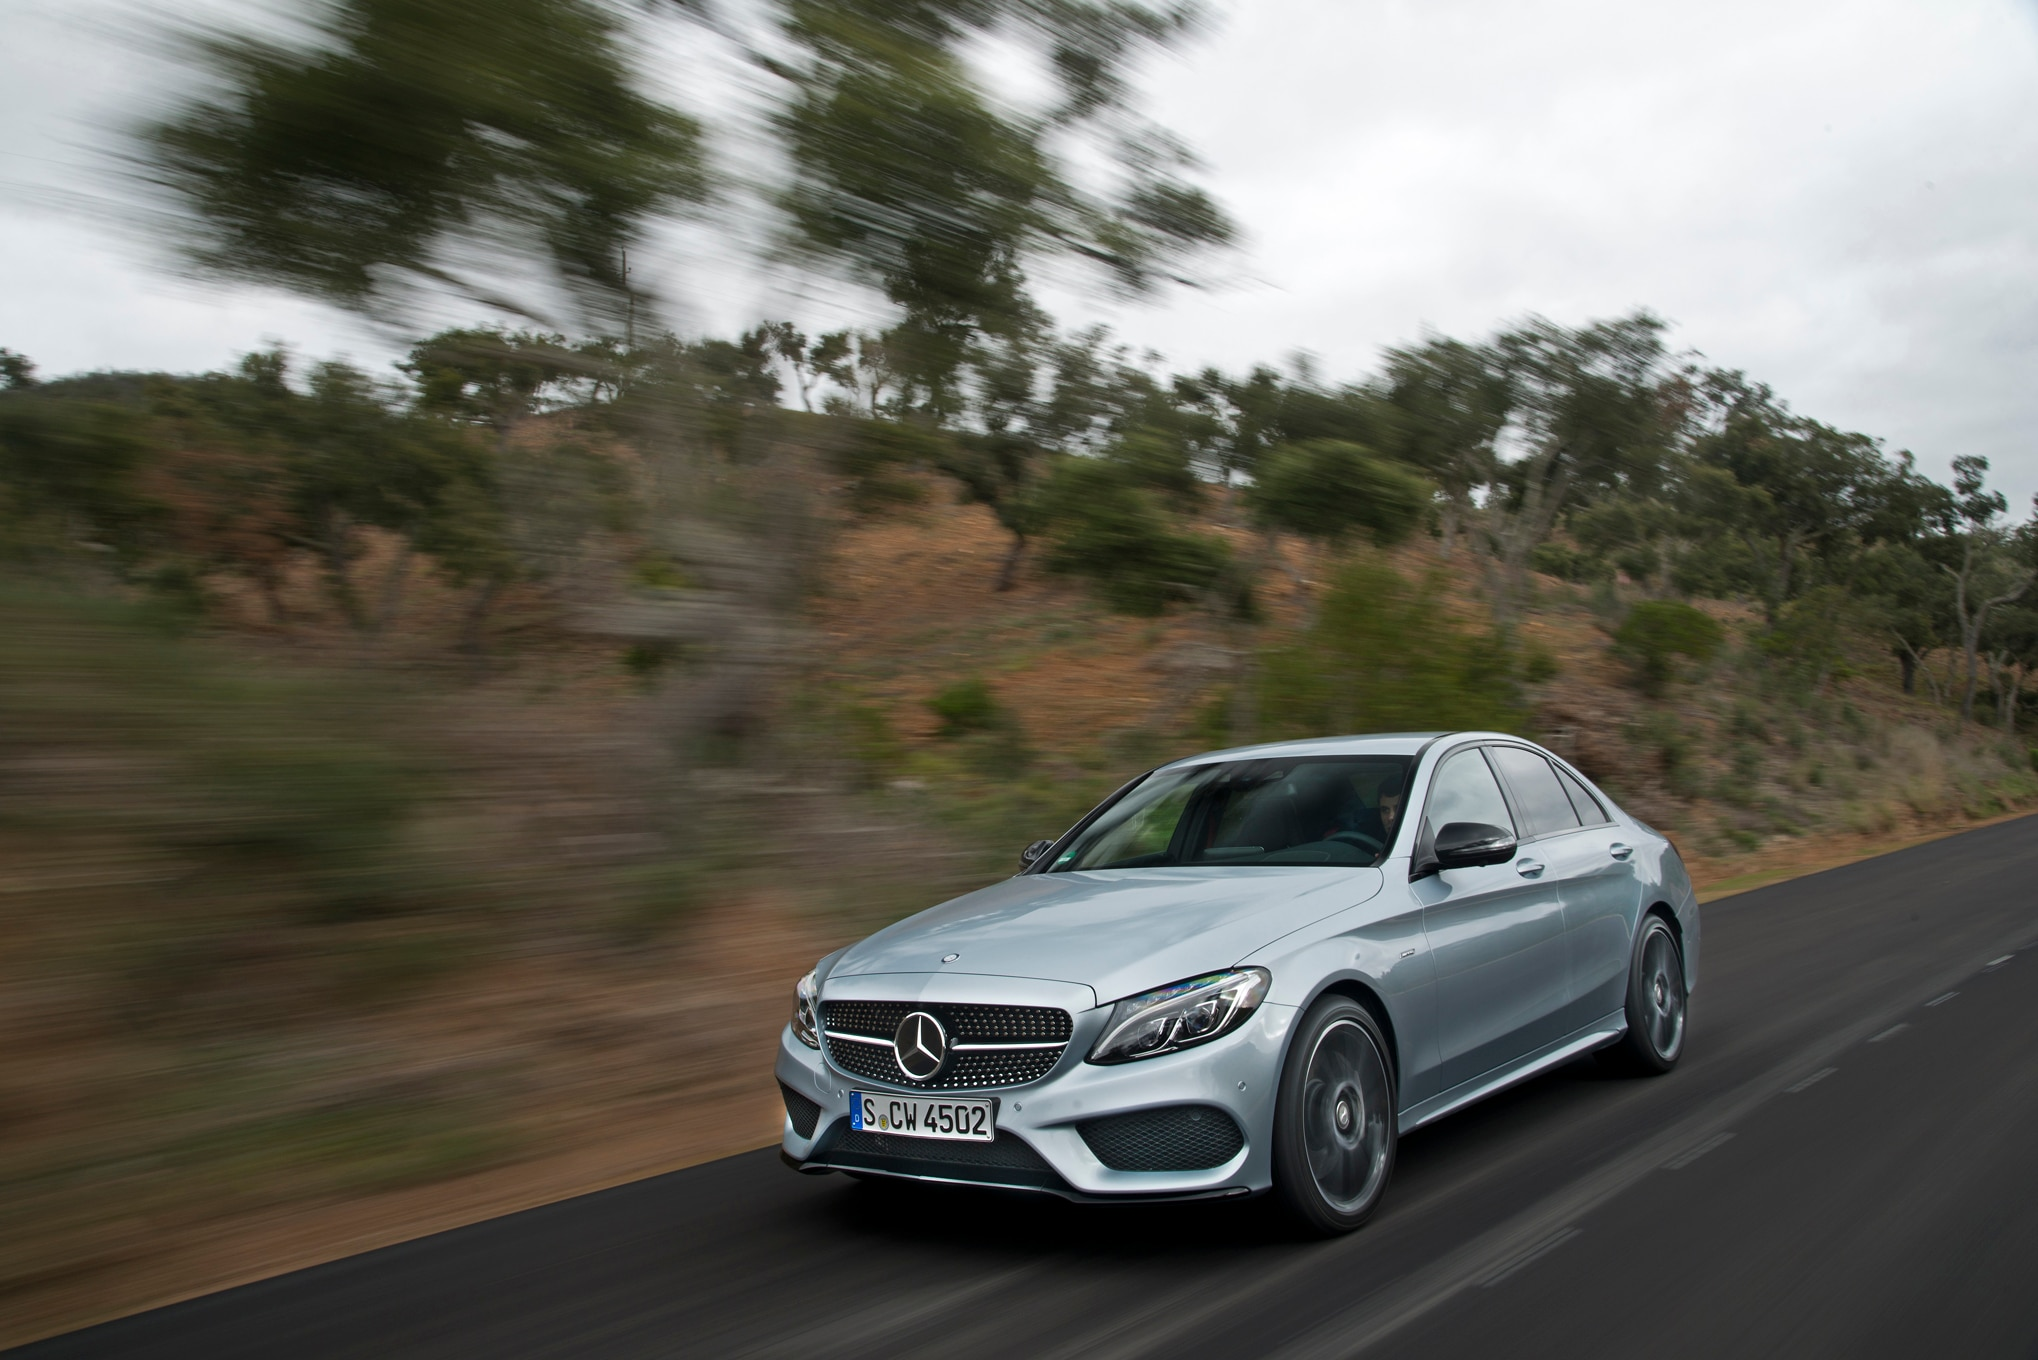 http://st.automobilemag.com/uploads/sites/11/2015/02/2016-Mercedes-Benz-C450-AMG-4Matic-front-three-quarter-in-motion-03.jpg